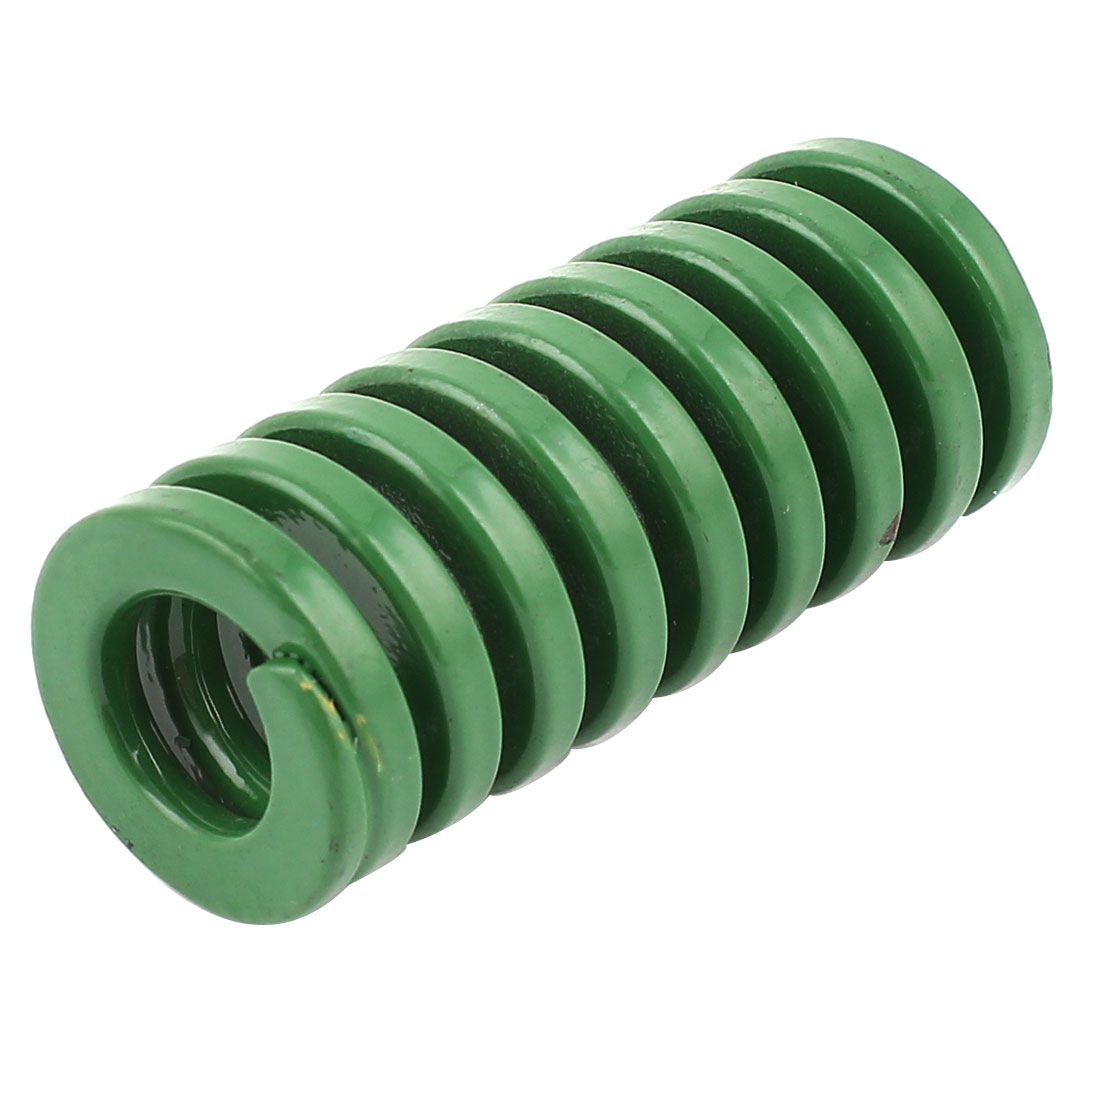 Green Chromium Alloy Steel Section Mould Die Spring 20mm x 10mm x 45mm